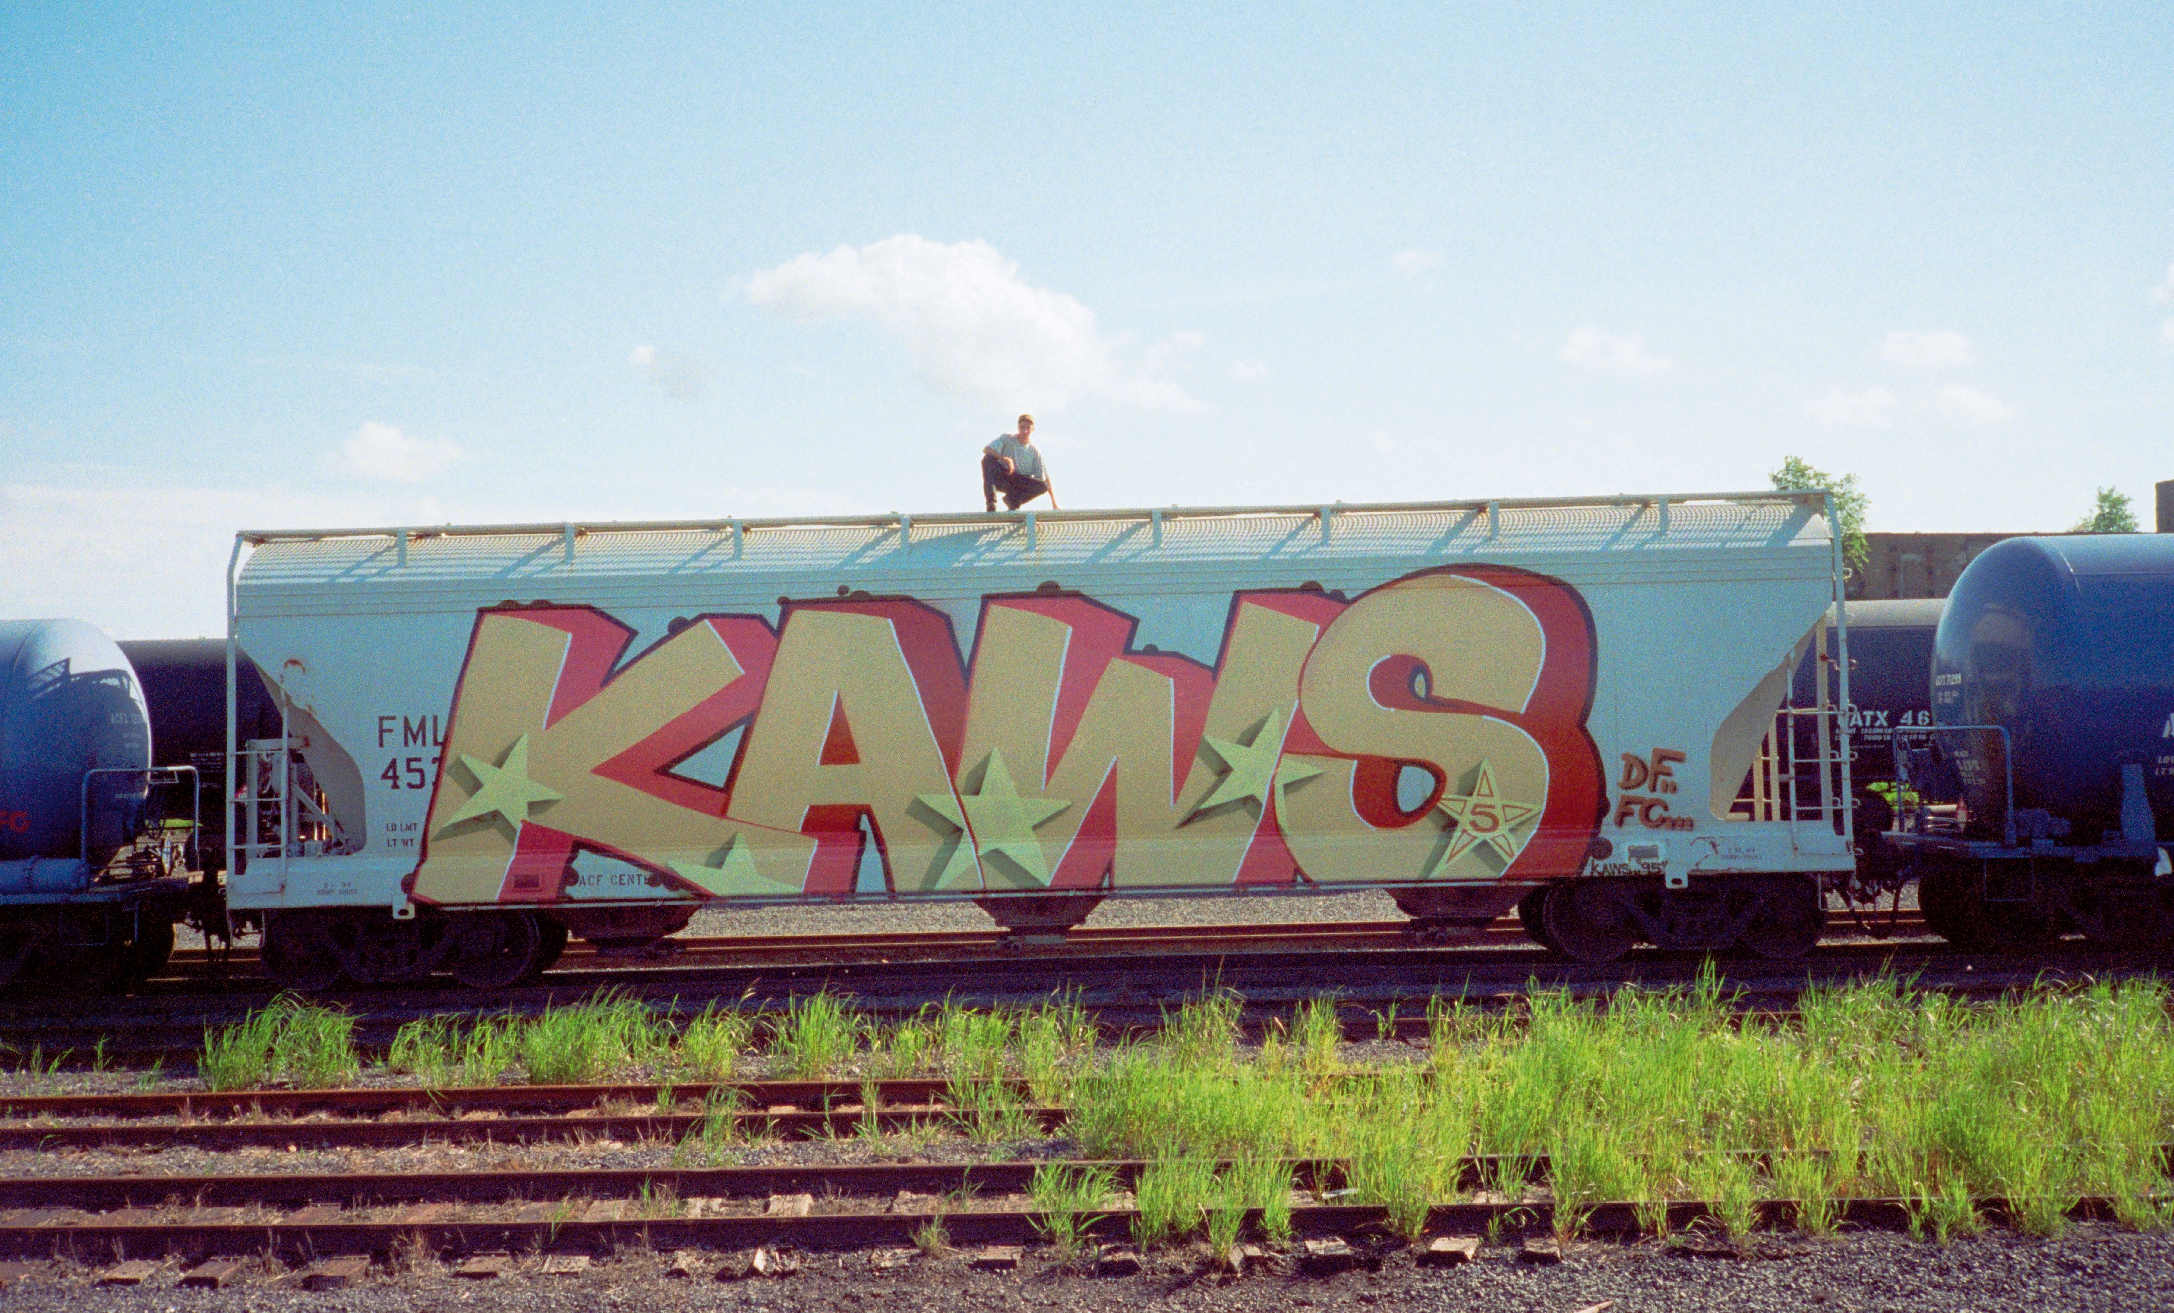 What the early graffiti of KAWS tells us about his later success